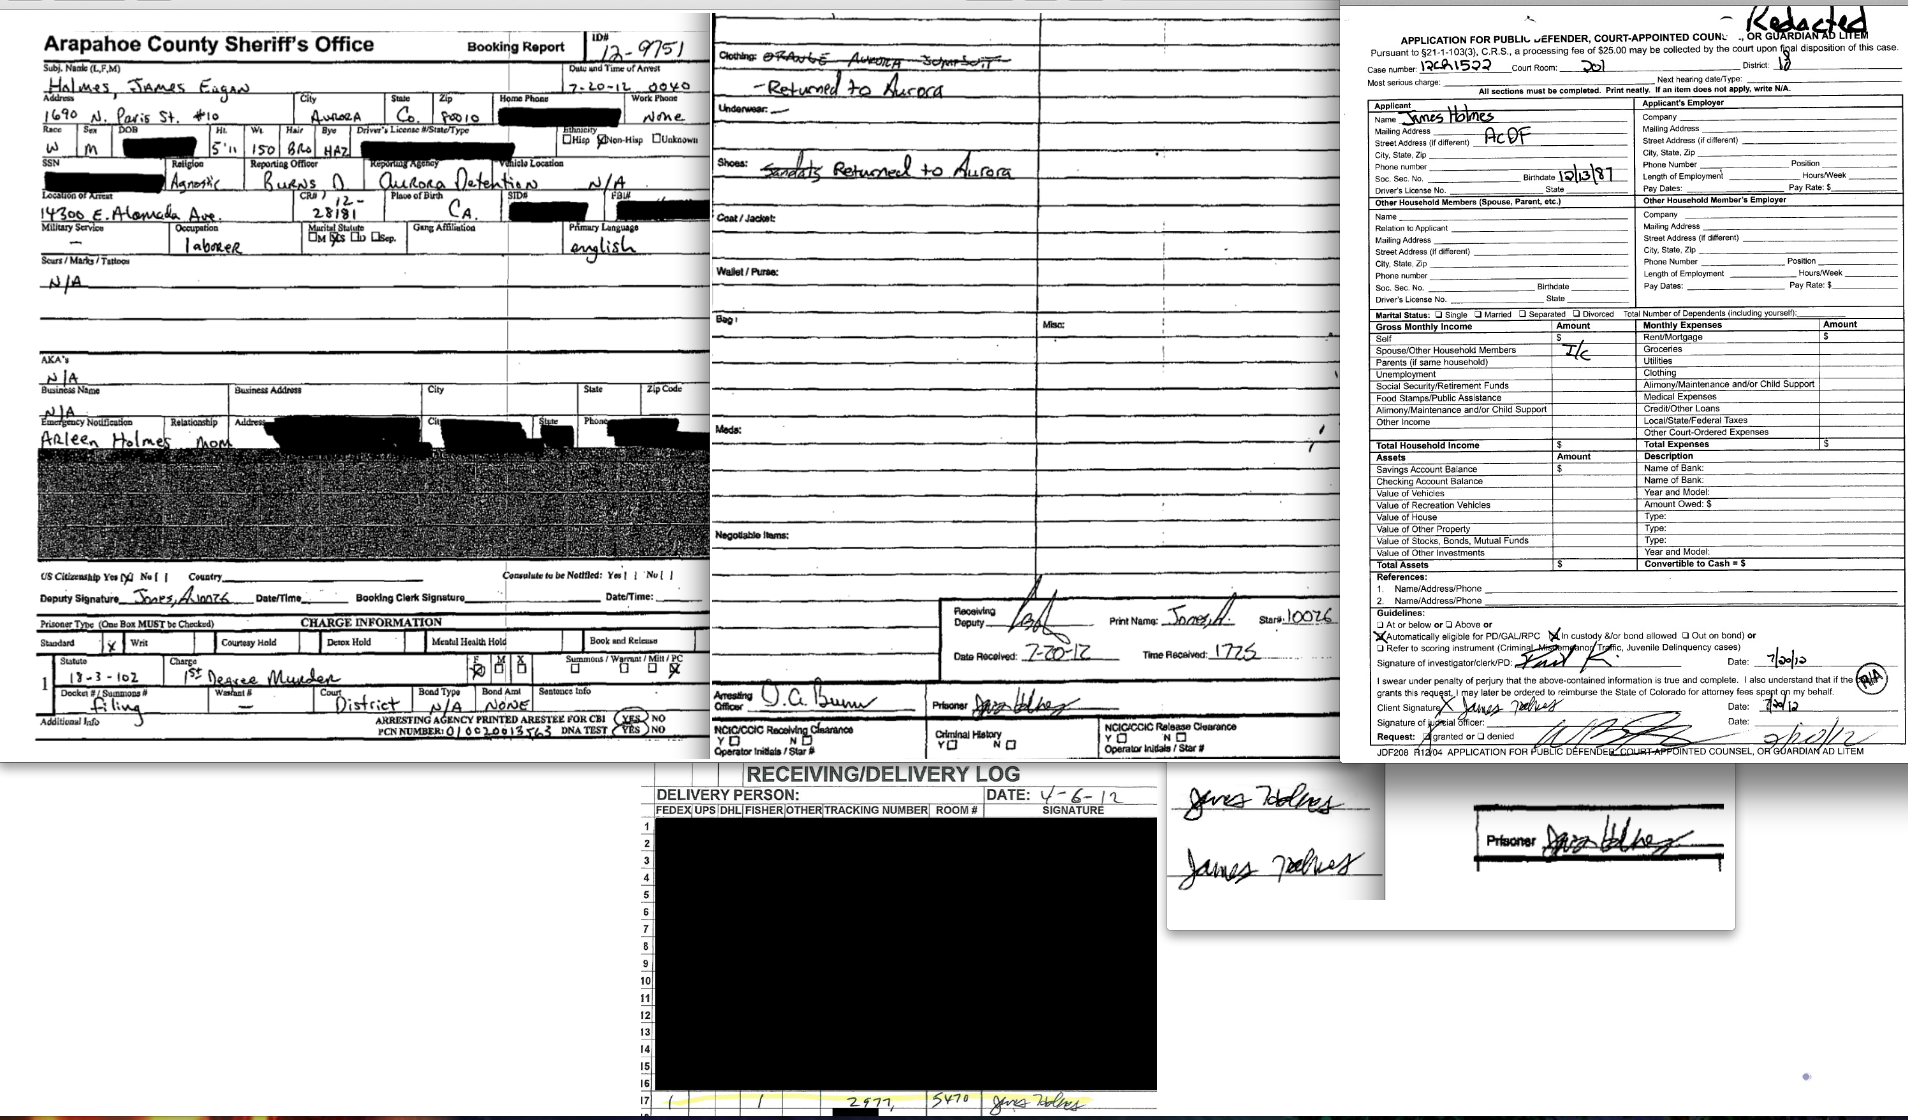 James holmes signatures booking report application for public james holmes signatures booking report application for public defender colorado university delivery log xflitez Gallery